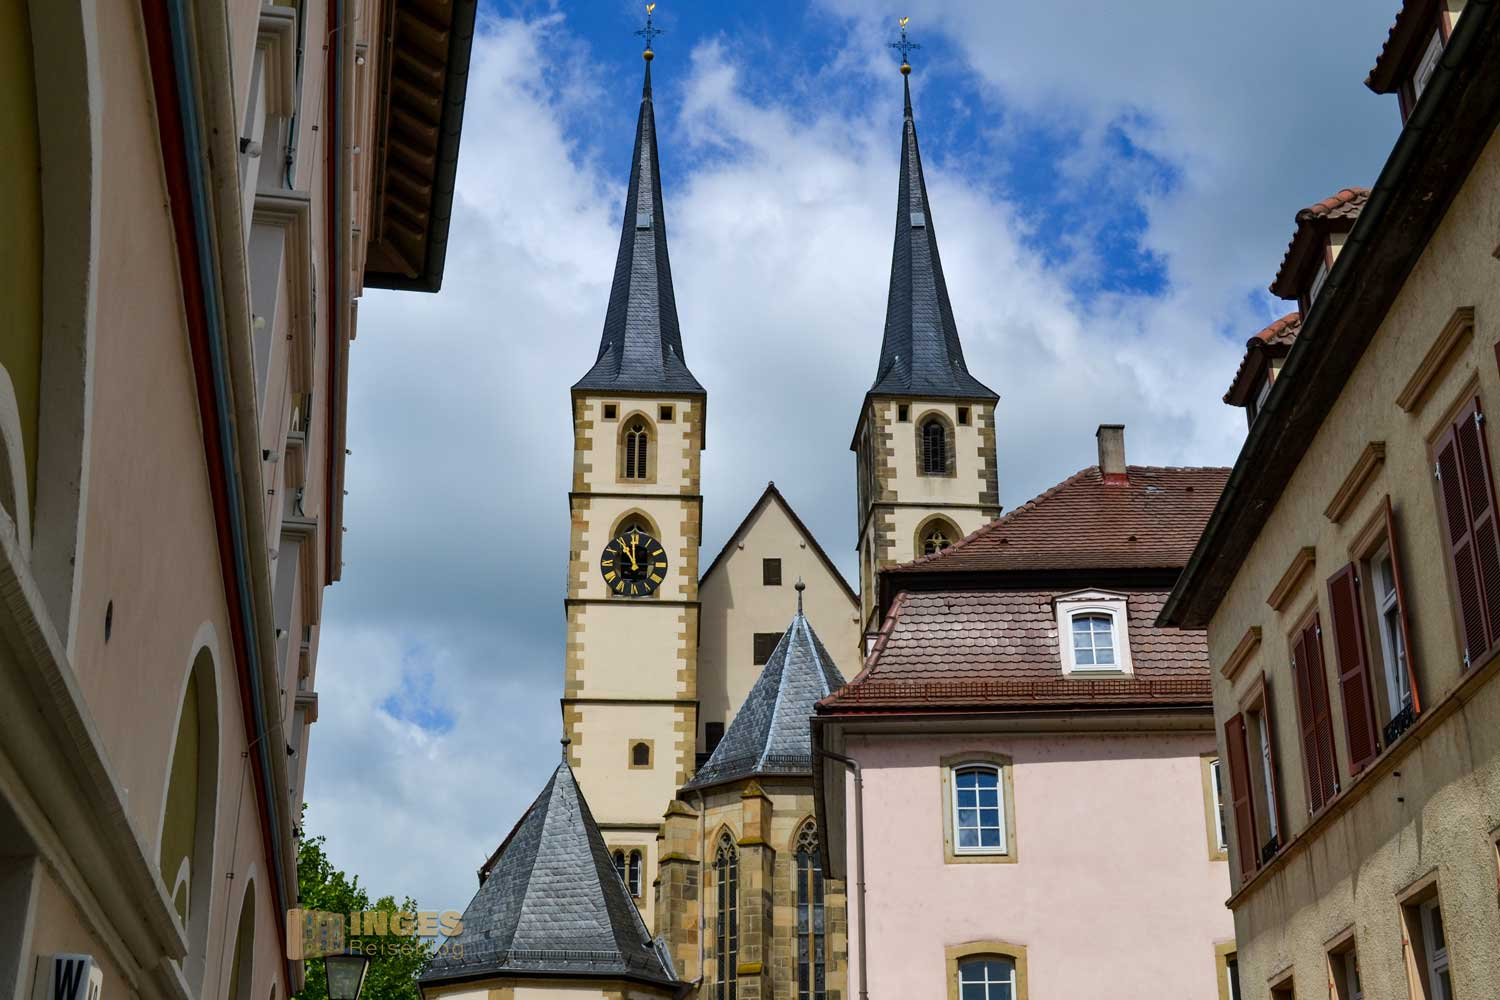 evang. Stadtkirche Bad Wimpfen